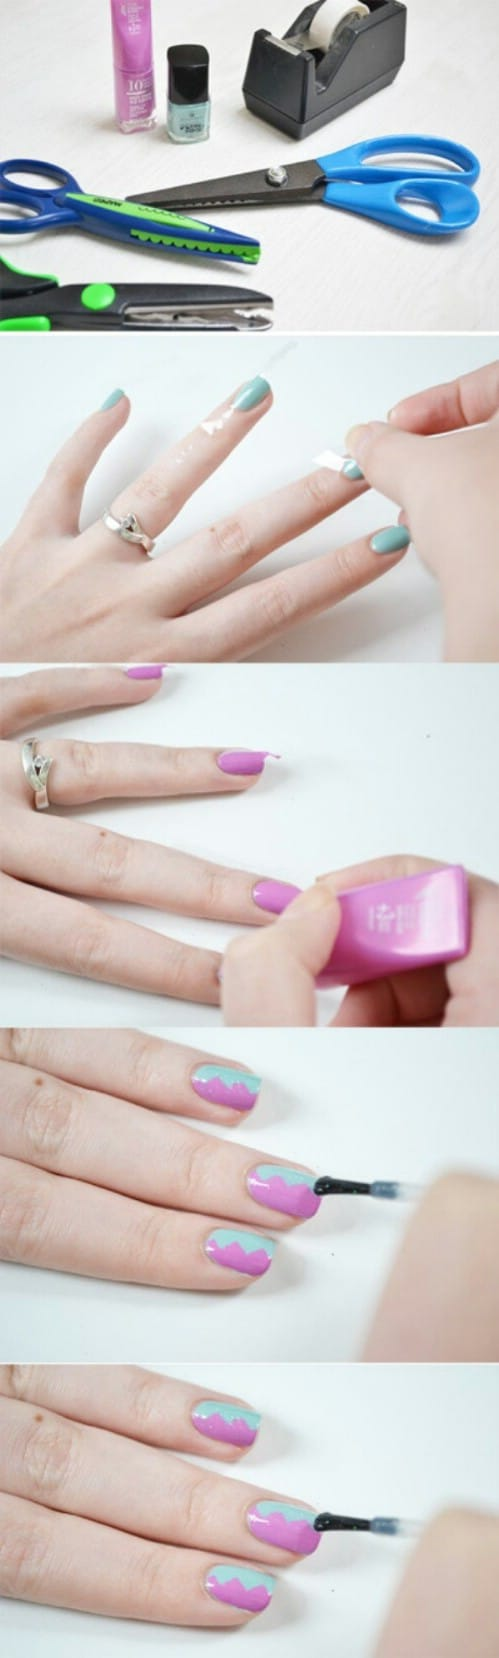 40 diy nail art hacks that are borderline genius diy crafts shearing scissors as a tool solutioingenieria Image collections